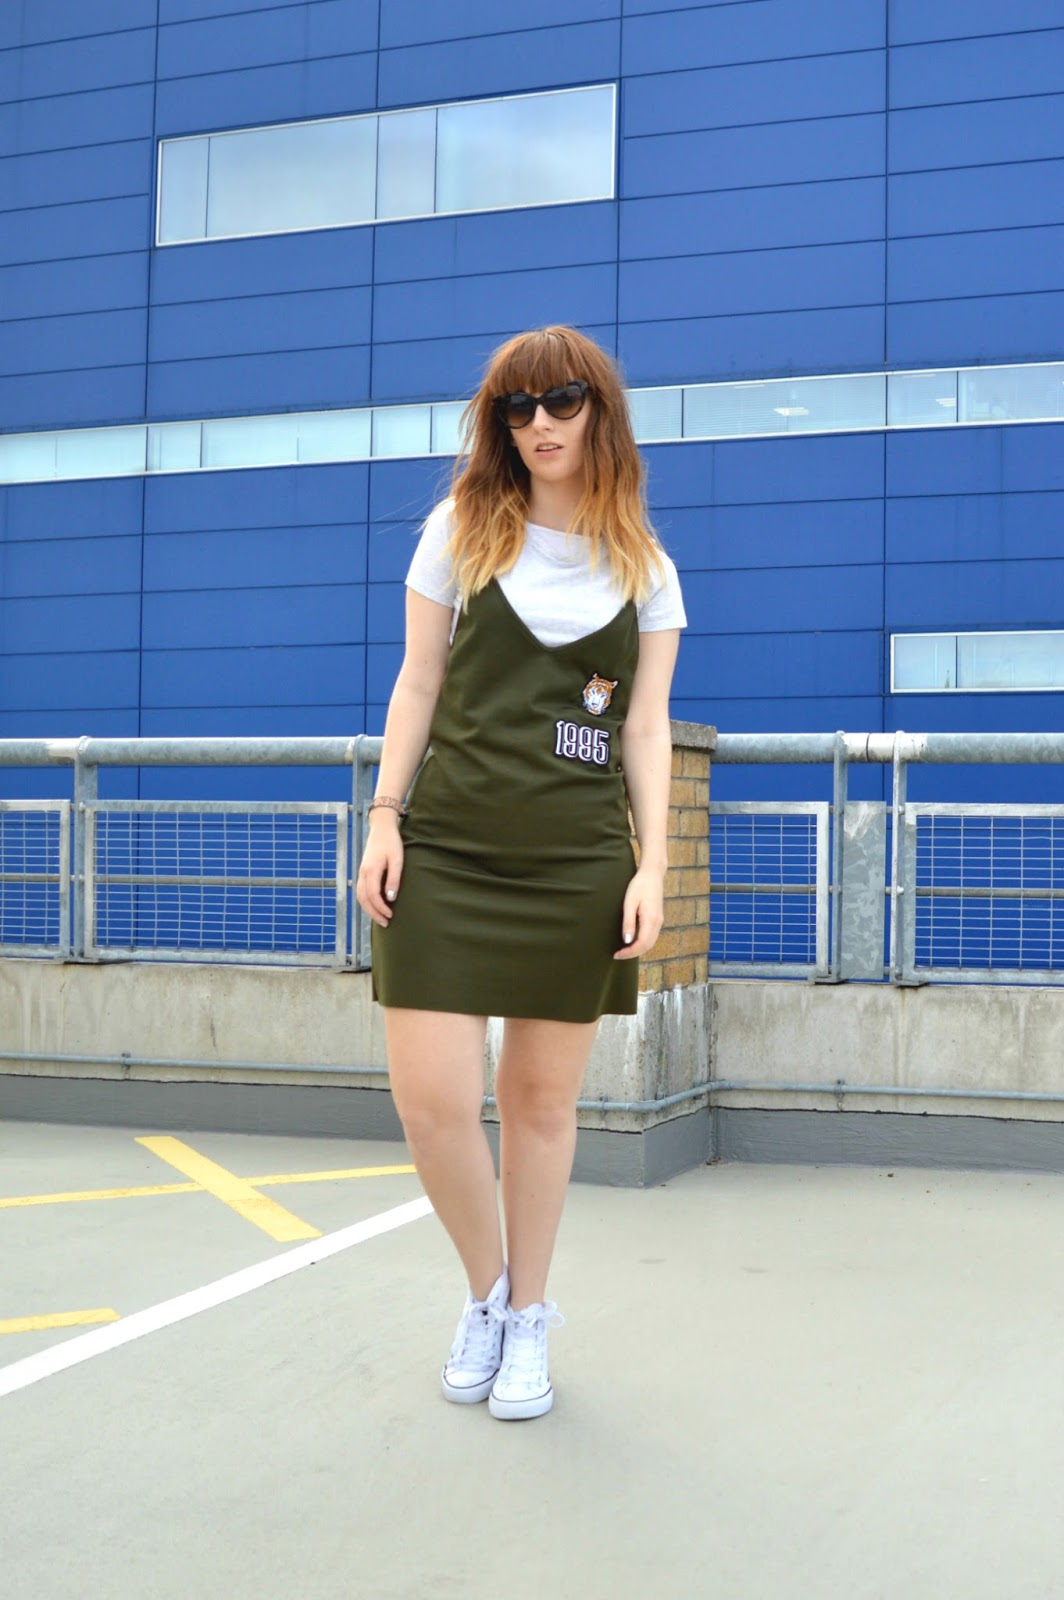 zara dress, Primark sunglasses, personal style blogger, fashion blogger